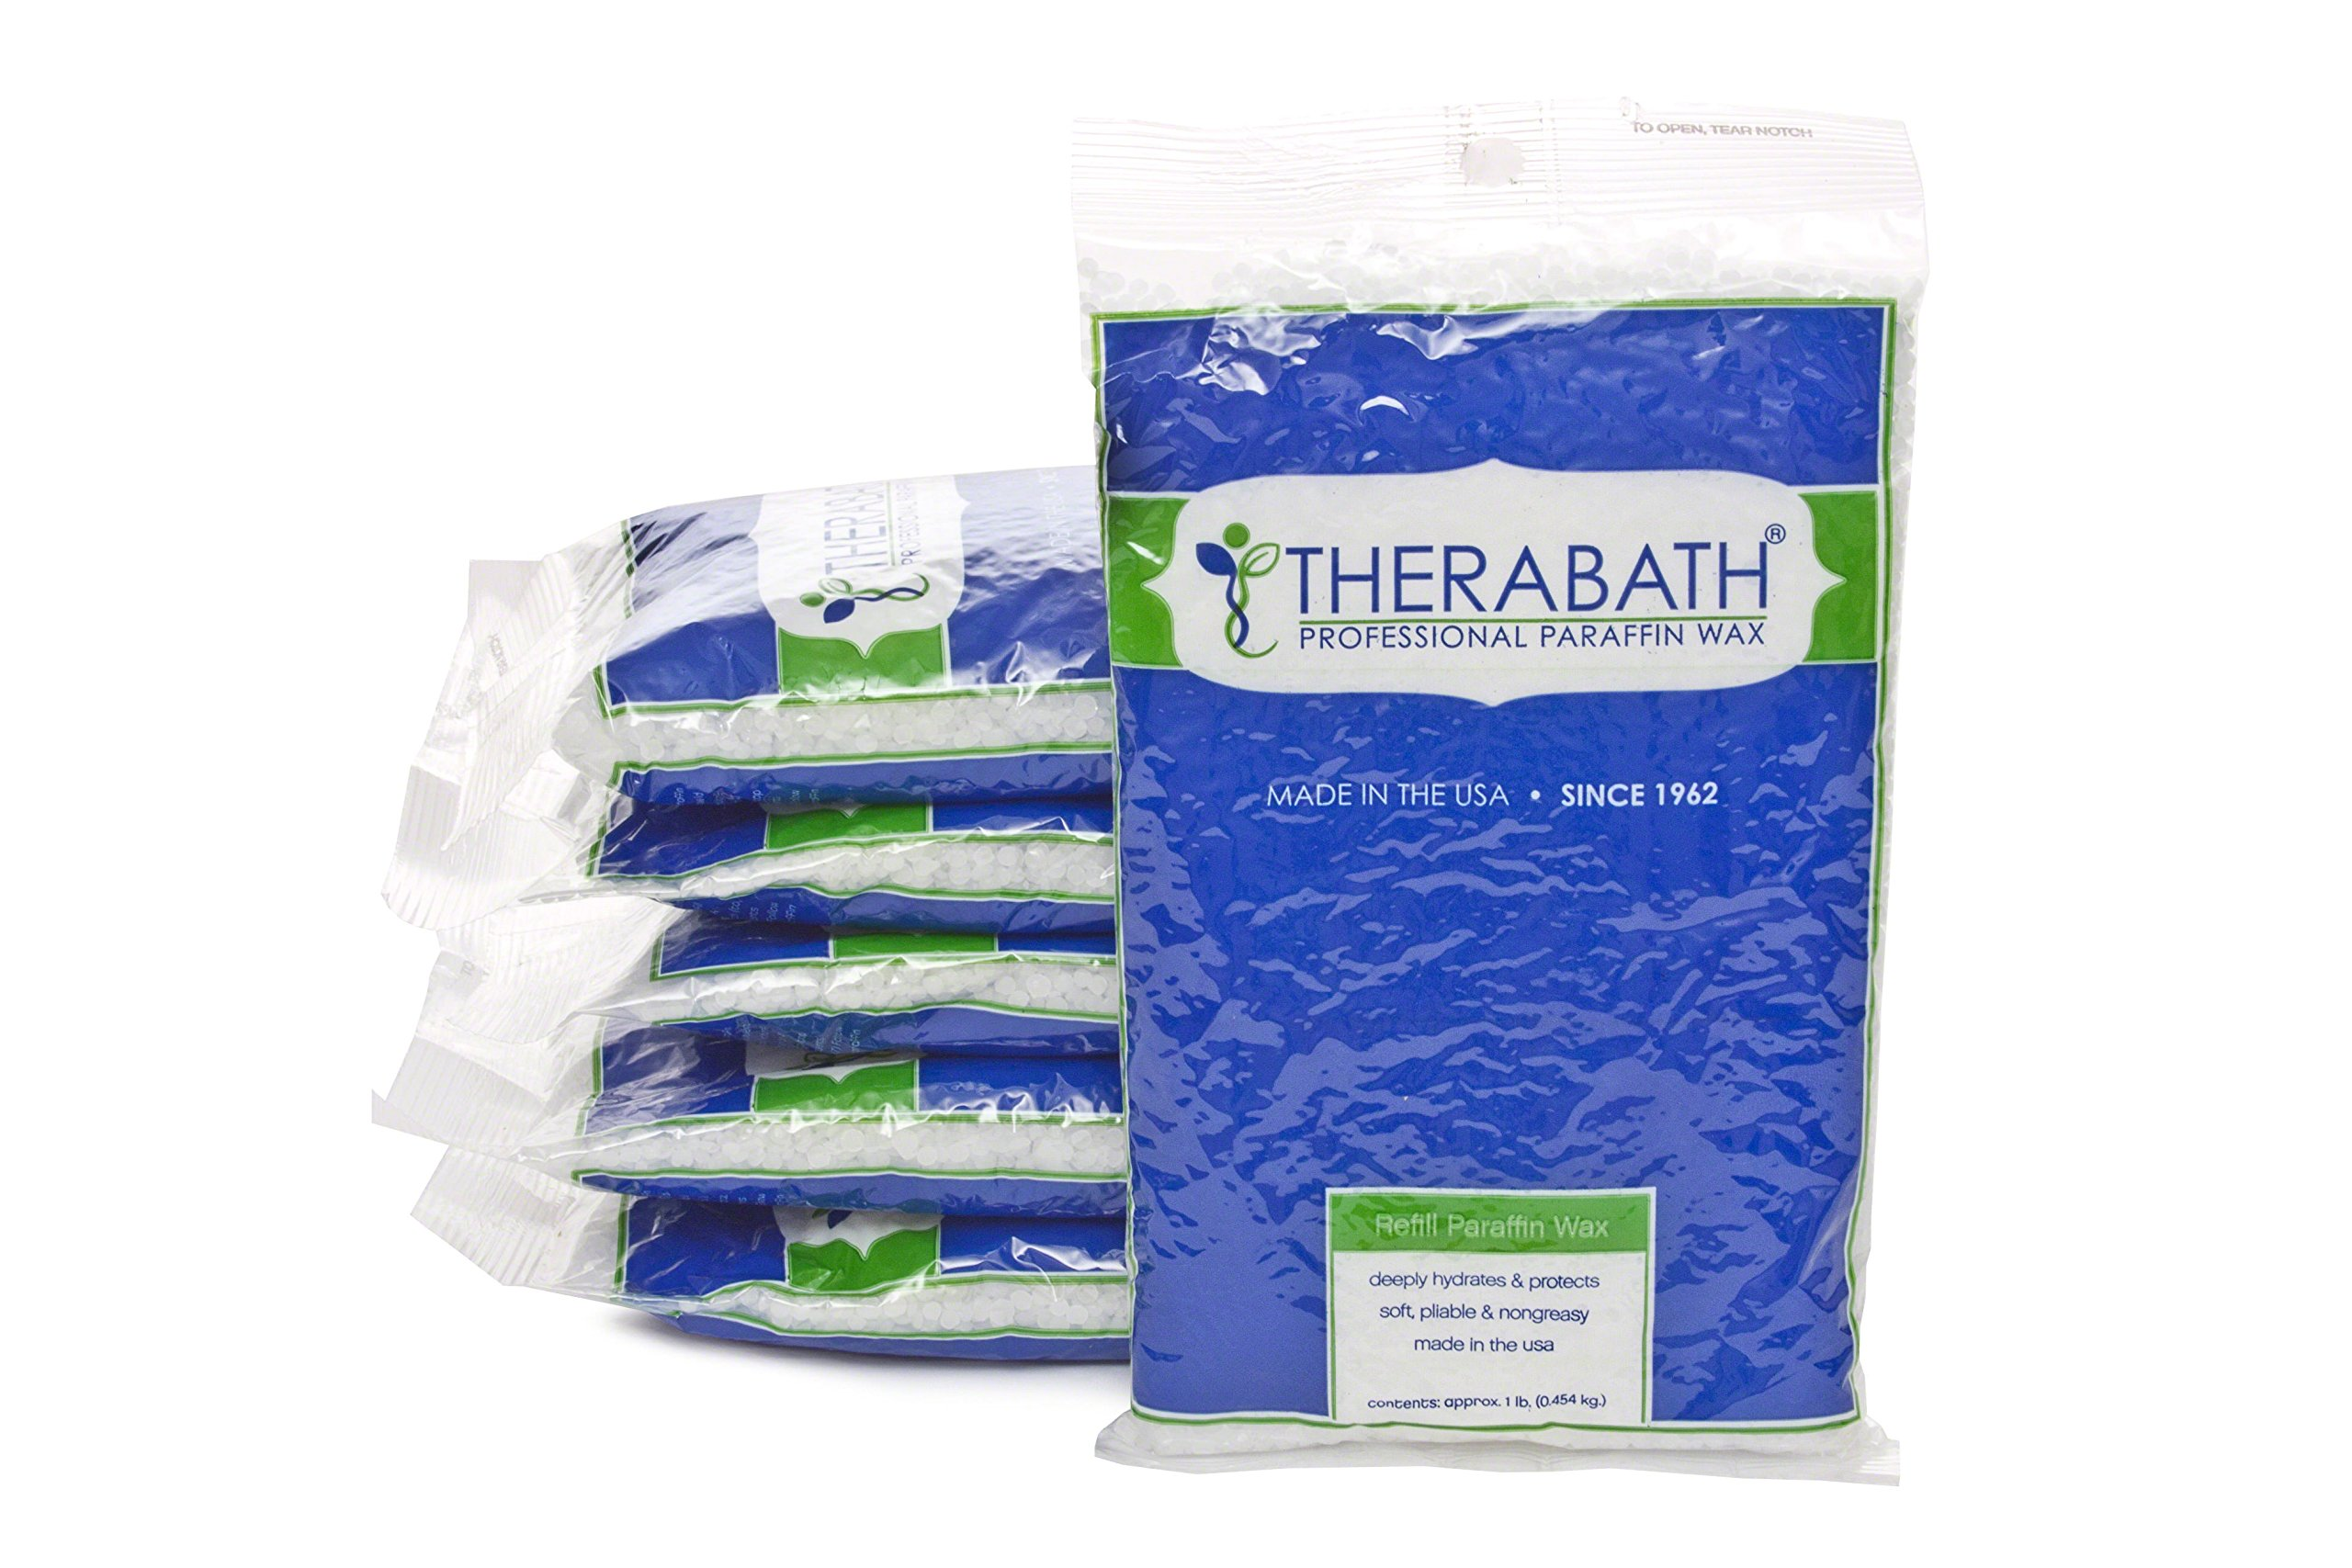 Therabath Paraffin Wax Refill - Use To Relieve Arthitis Pain and Stiff Muscles - Deeply Hydrates and Protects - 6 lbs (ScentFree) by Therabath (Image #3)